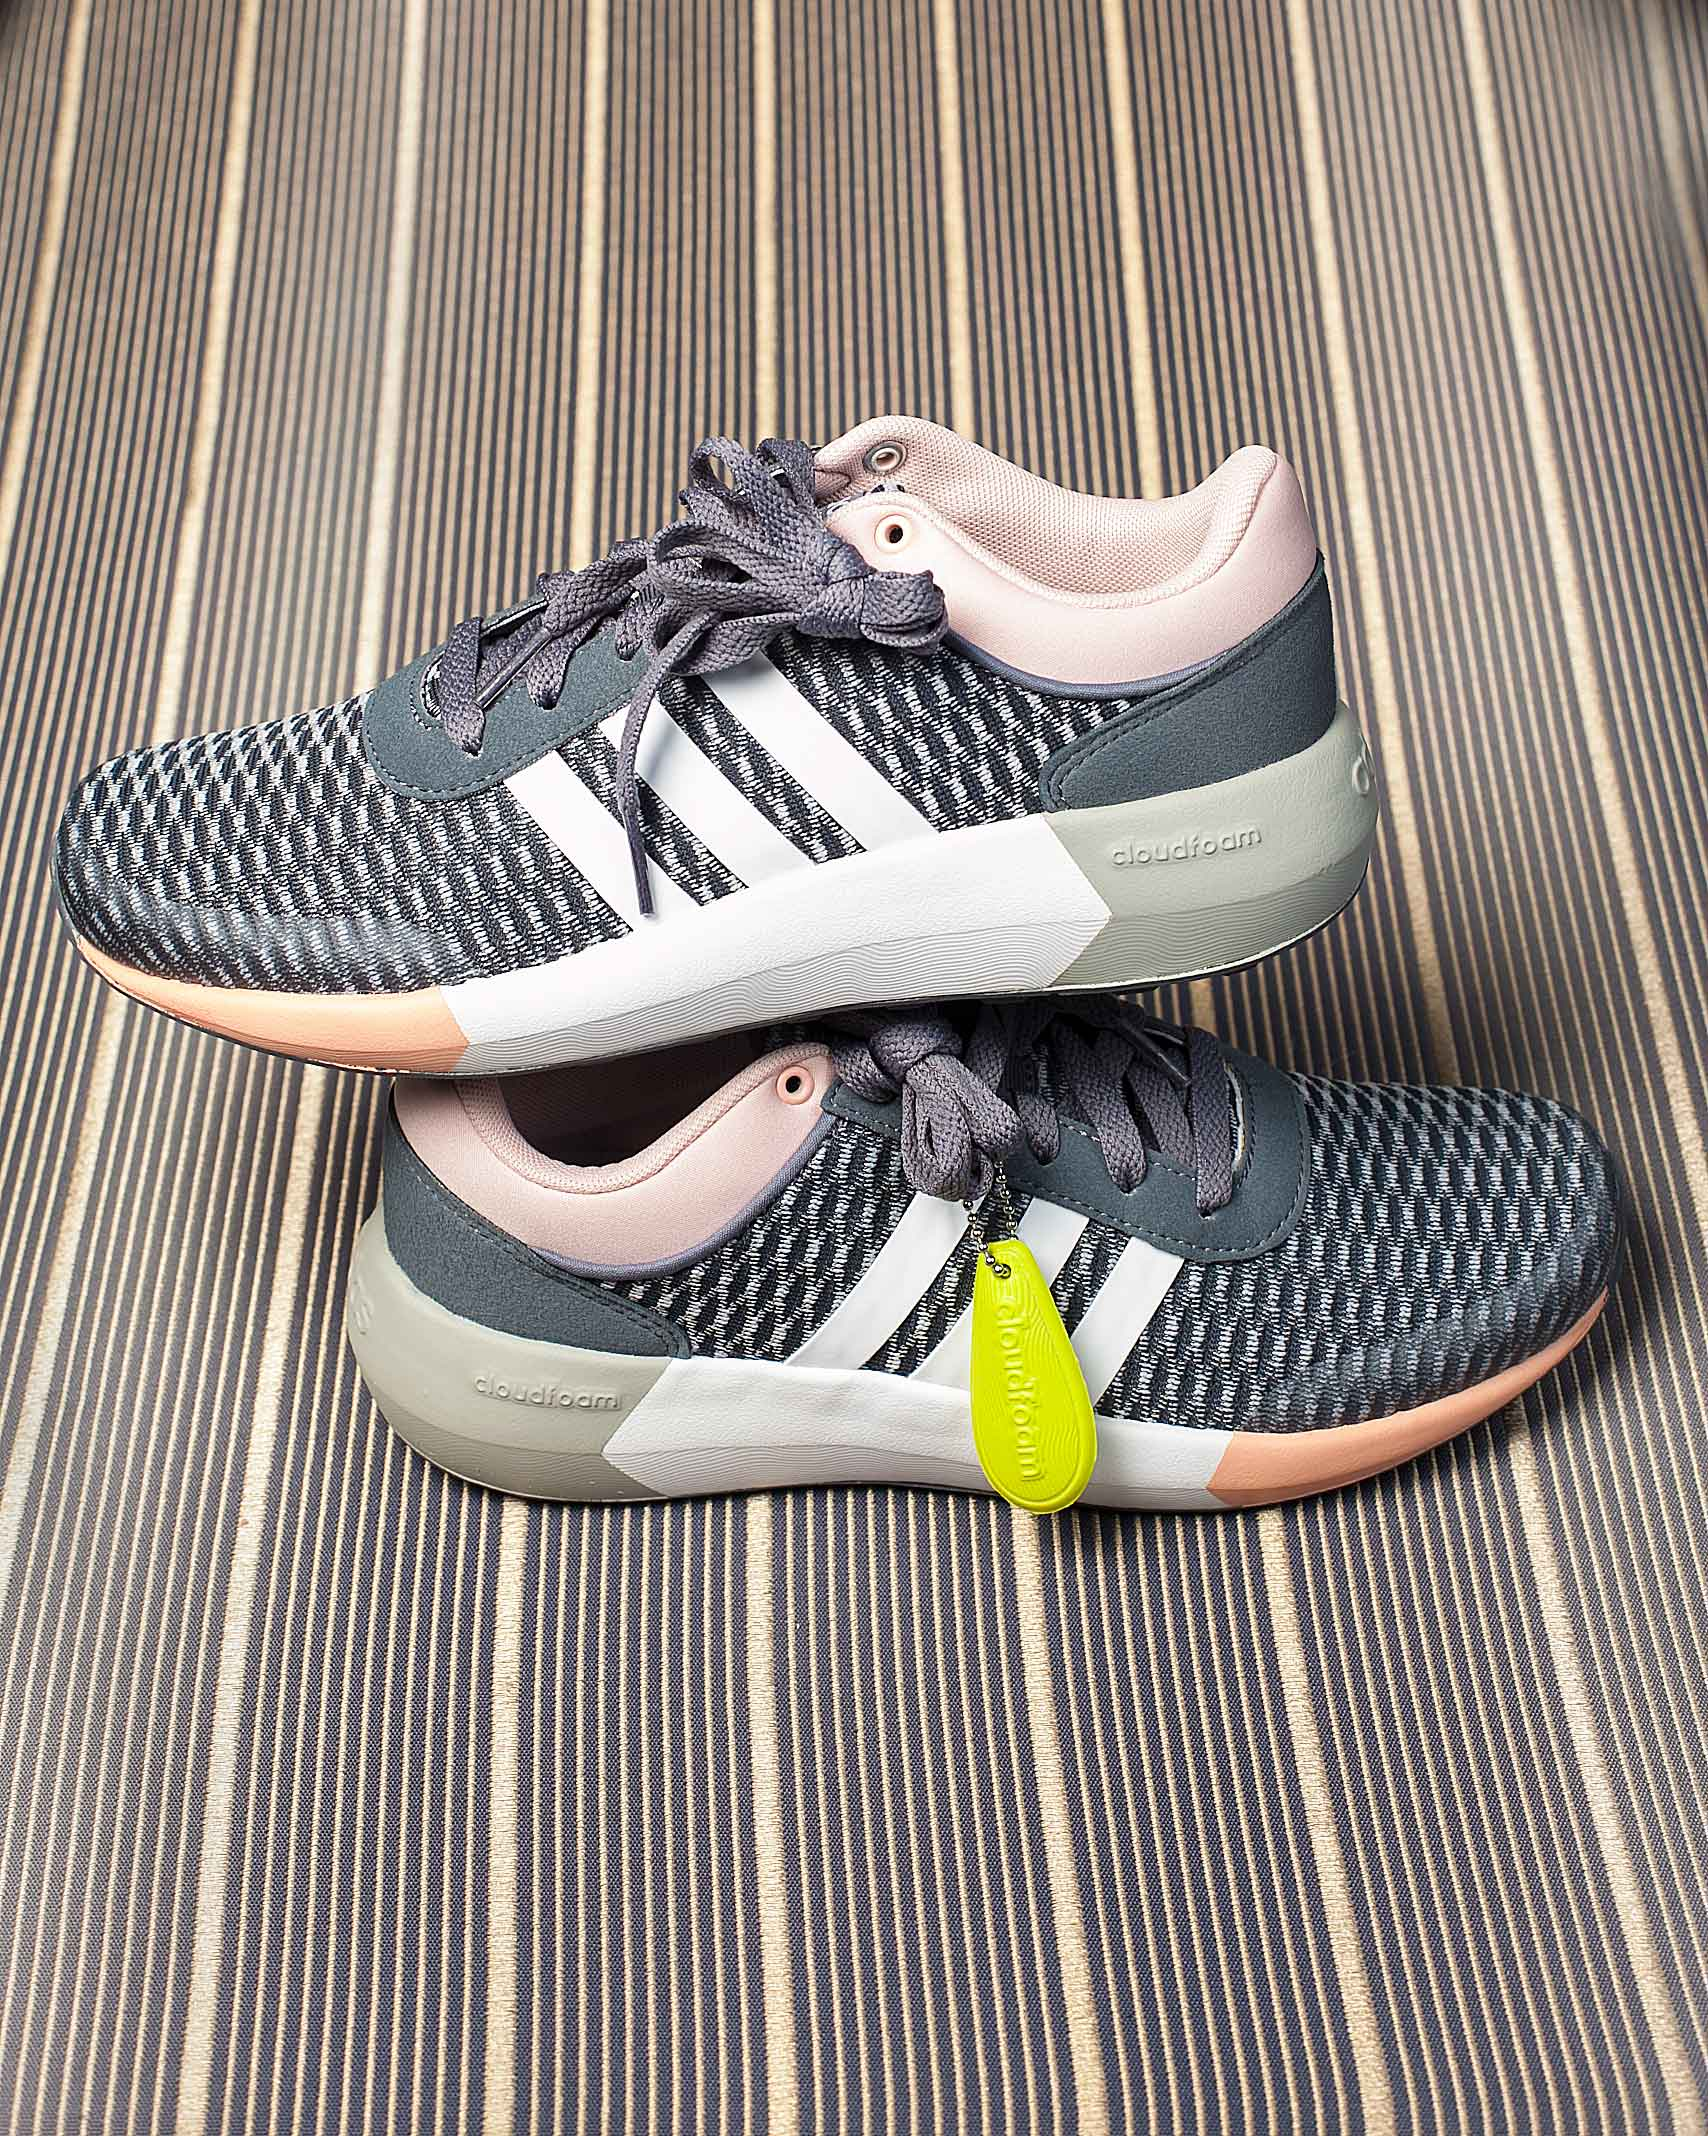 12 Running Shoes That Break the Mold | Fitness | Adidas